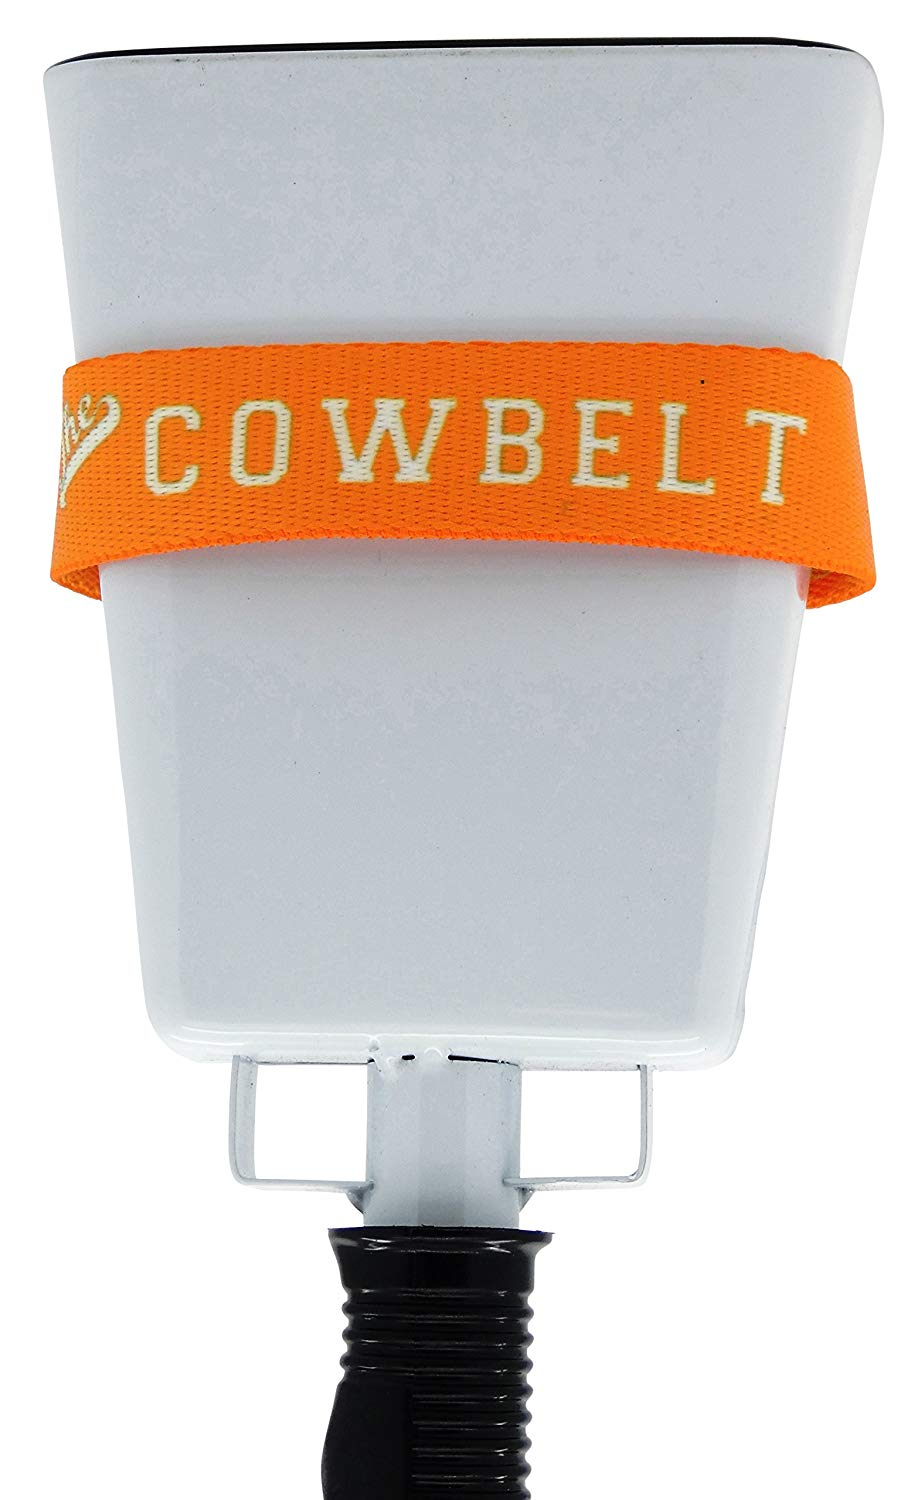 COWBELL Cowbelt Holster to Hold Bell for Cheering at Sporting Events